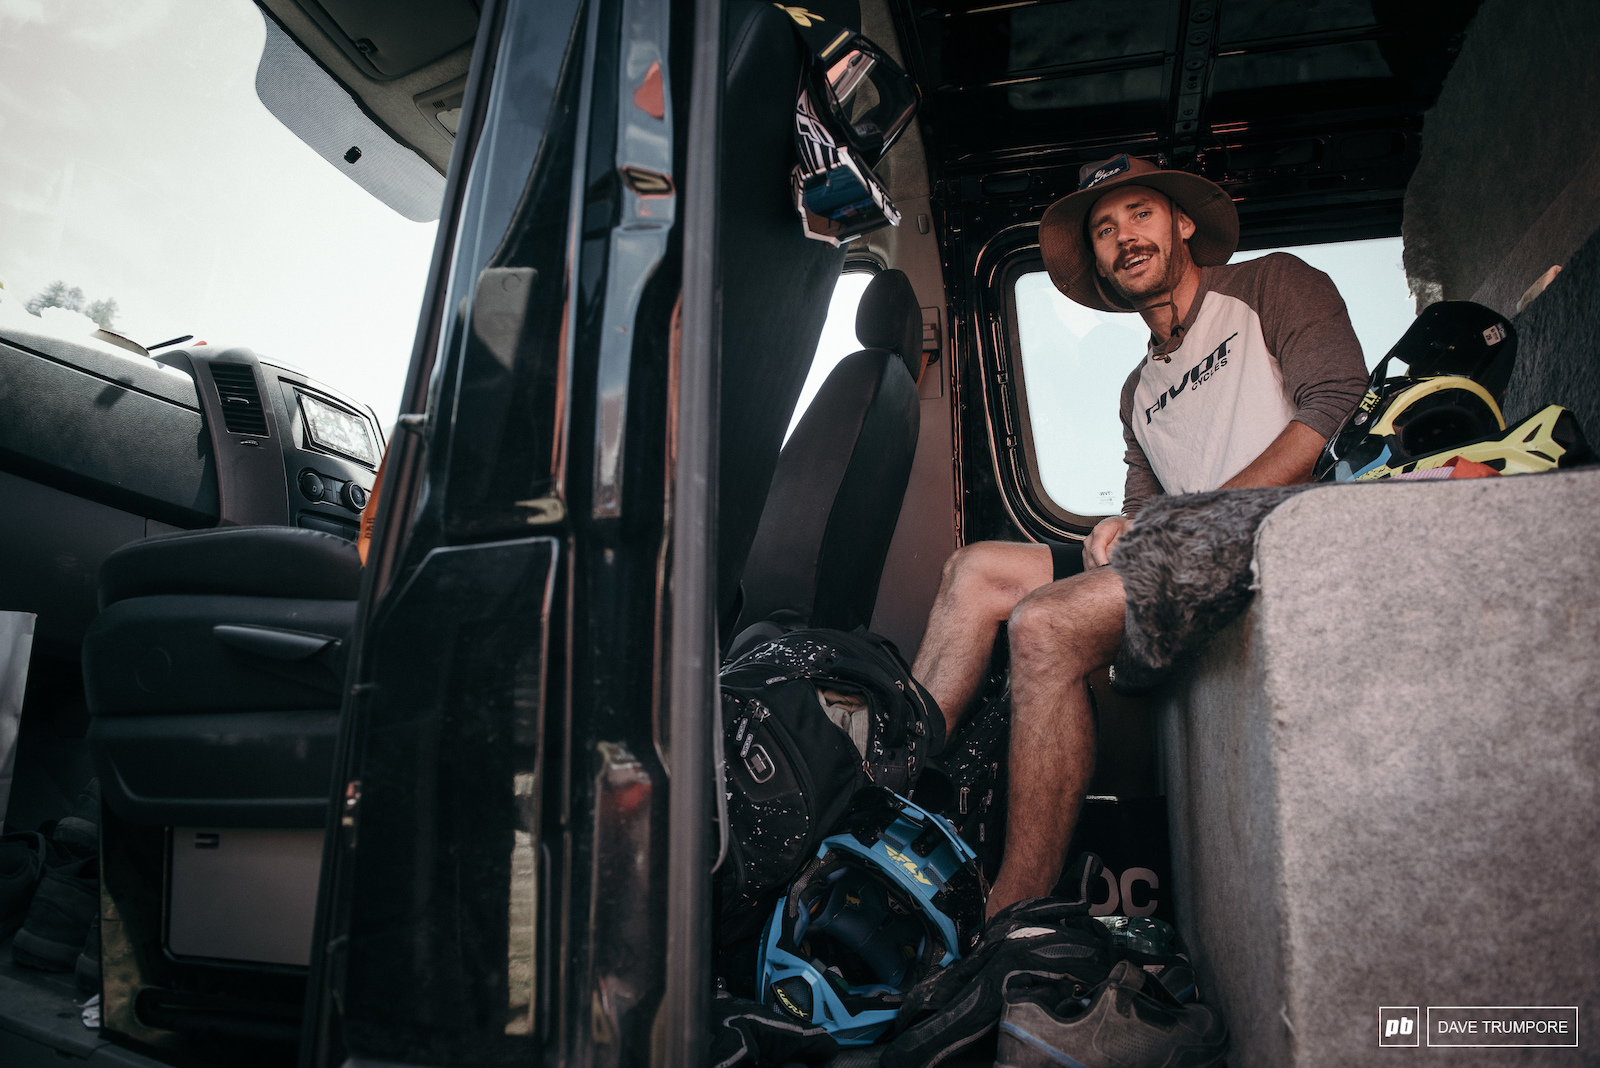 Eddie Masters calm and collected while living that van life in the pits